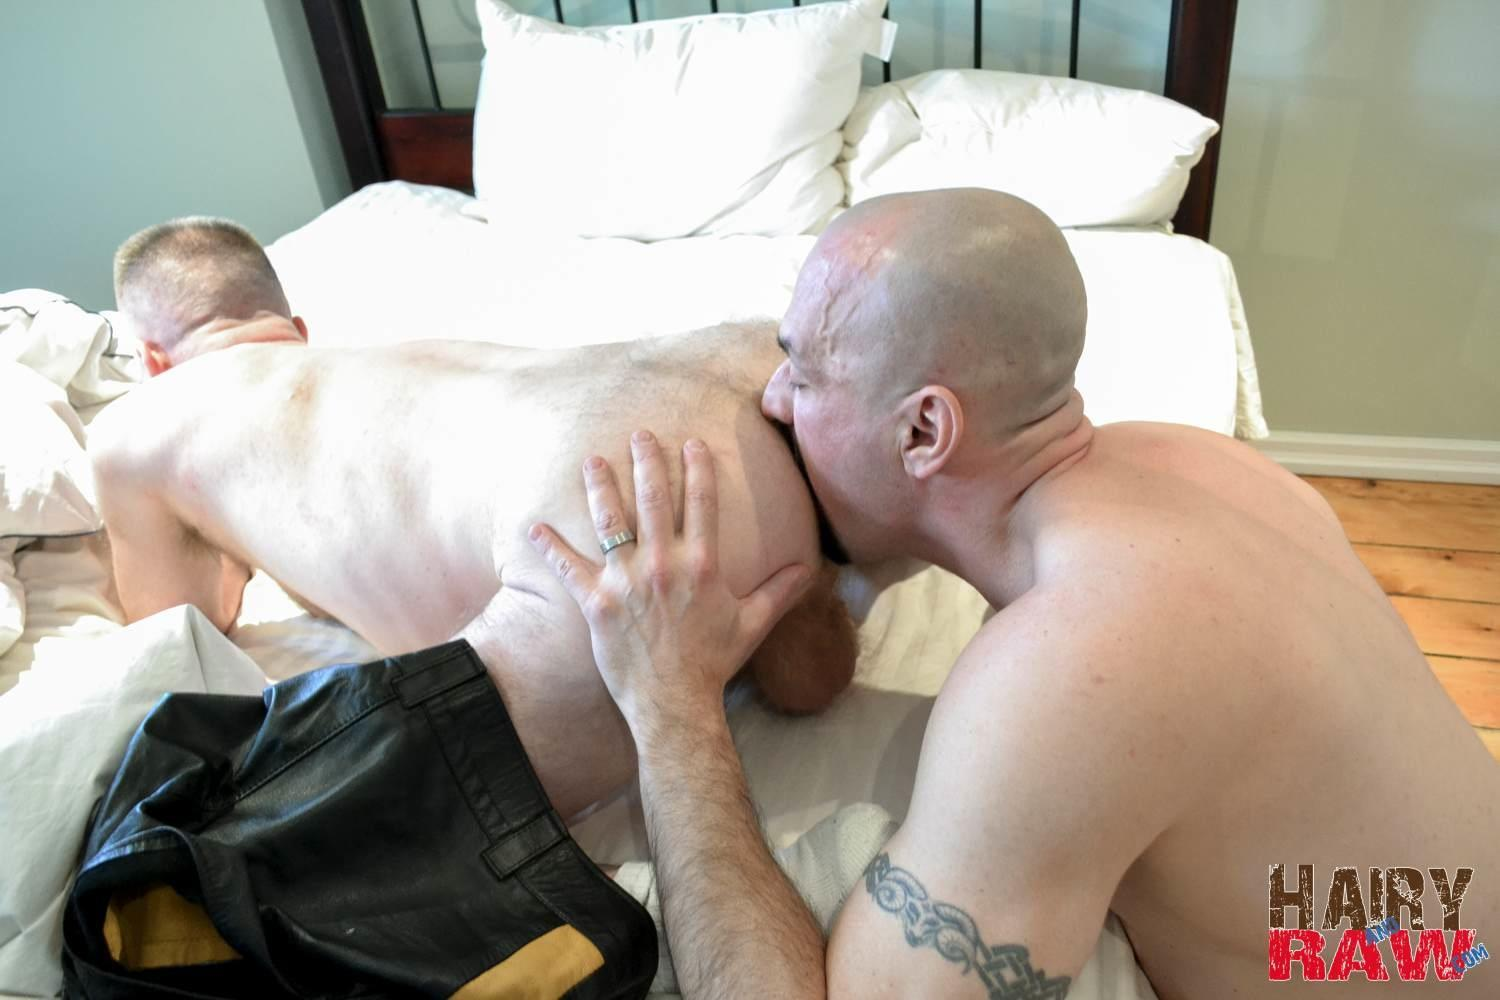 Hairy-and-Raw-Troy-Collins-and-CanaDad-Masculine-Hairy-Daddies-Fucking-Bareback-Amateur-Gay-Porn-11 Hairy Masucline Daddies Flip Flop Fucking Bareback